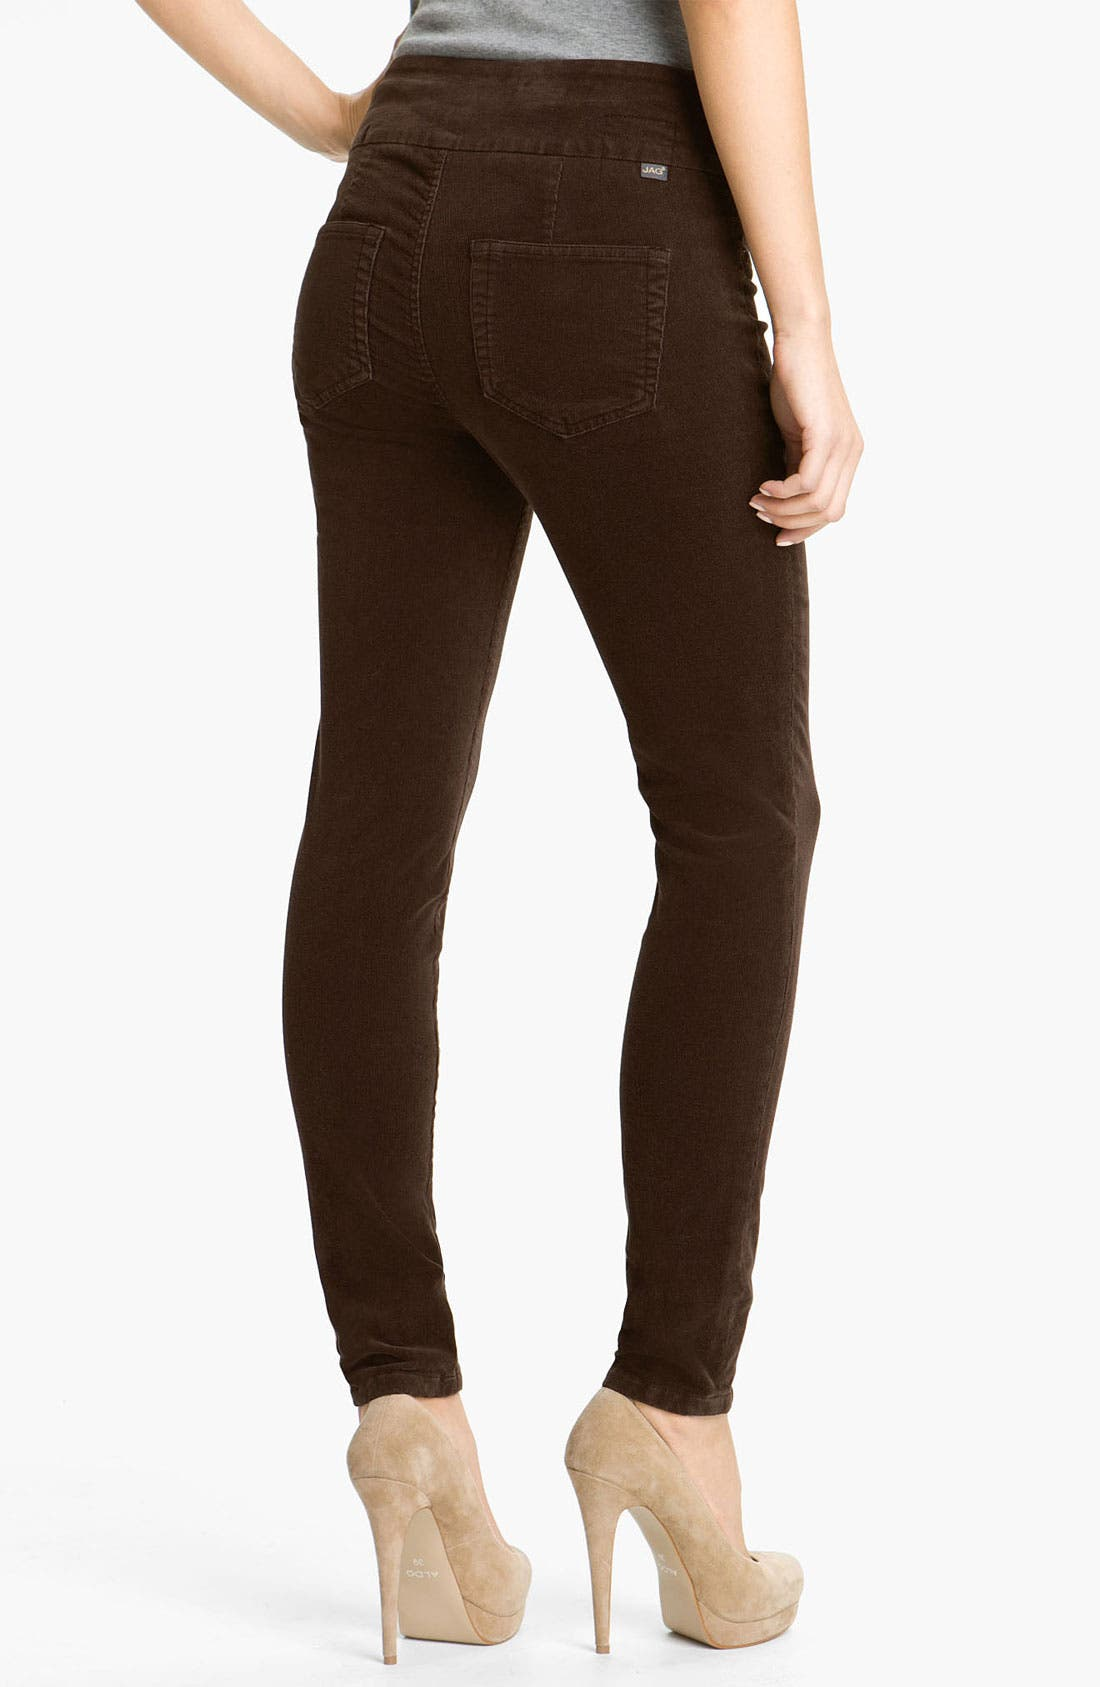 Alternate Image 1 Selected - Jag Jeans 'Nikki' Corduroy Leggings